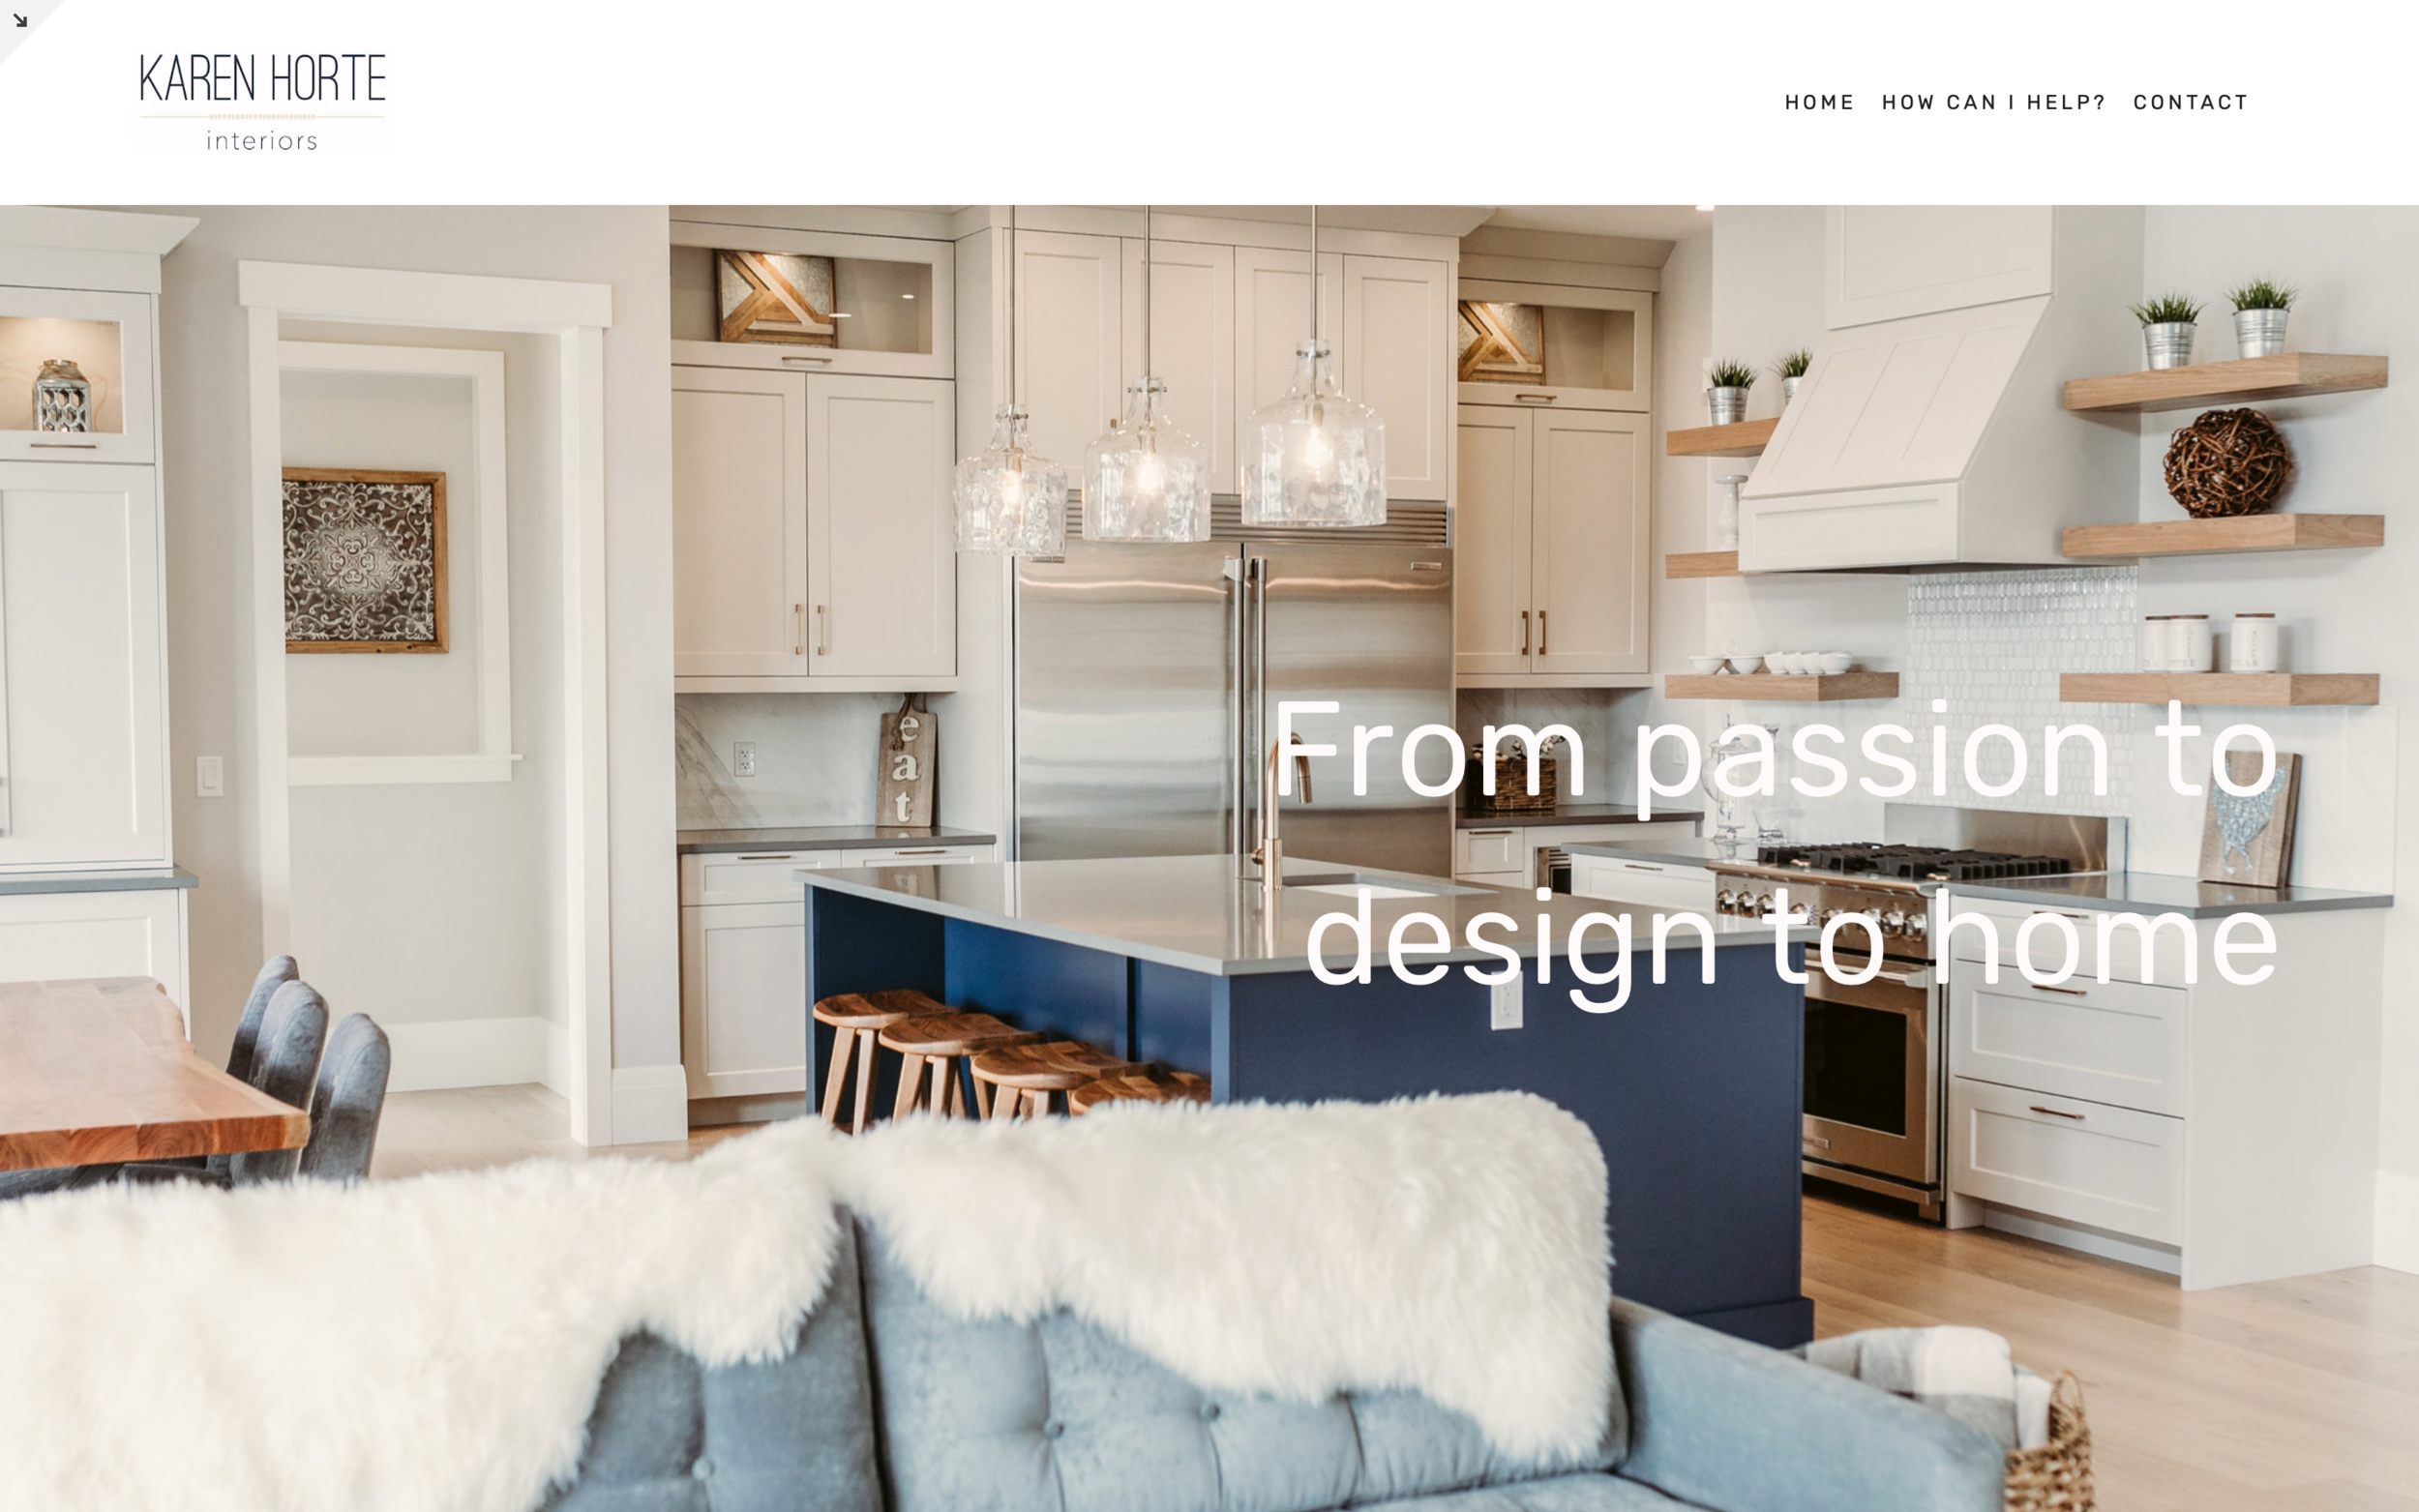 I not only got a great website, but Neville is also teaching me how to make changes on my own and follow website design principles which keep it looking great. - Karen Horte, Karen Horte Interiors, Canada